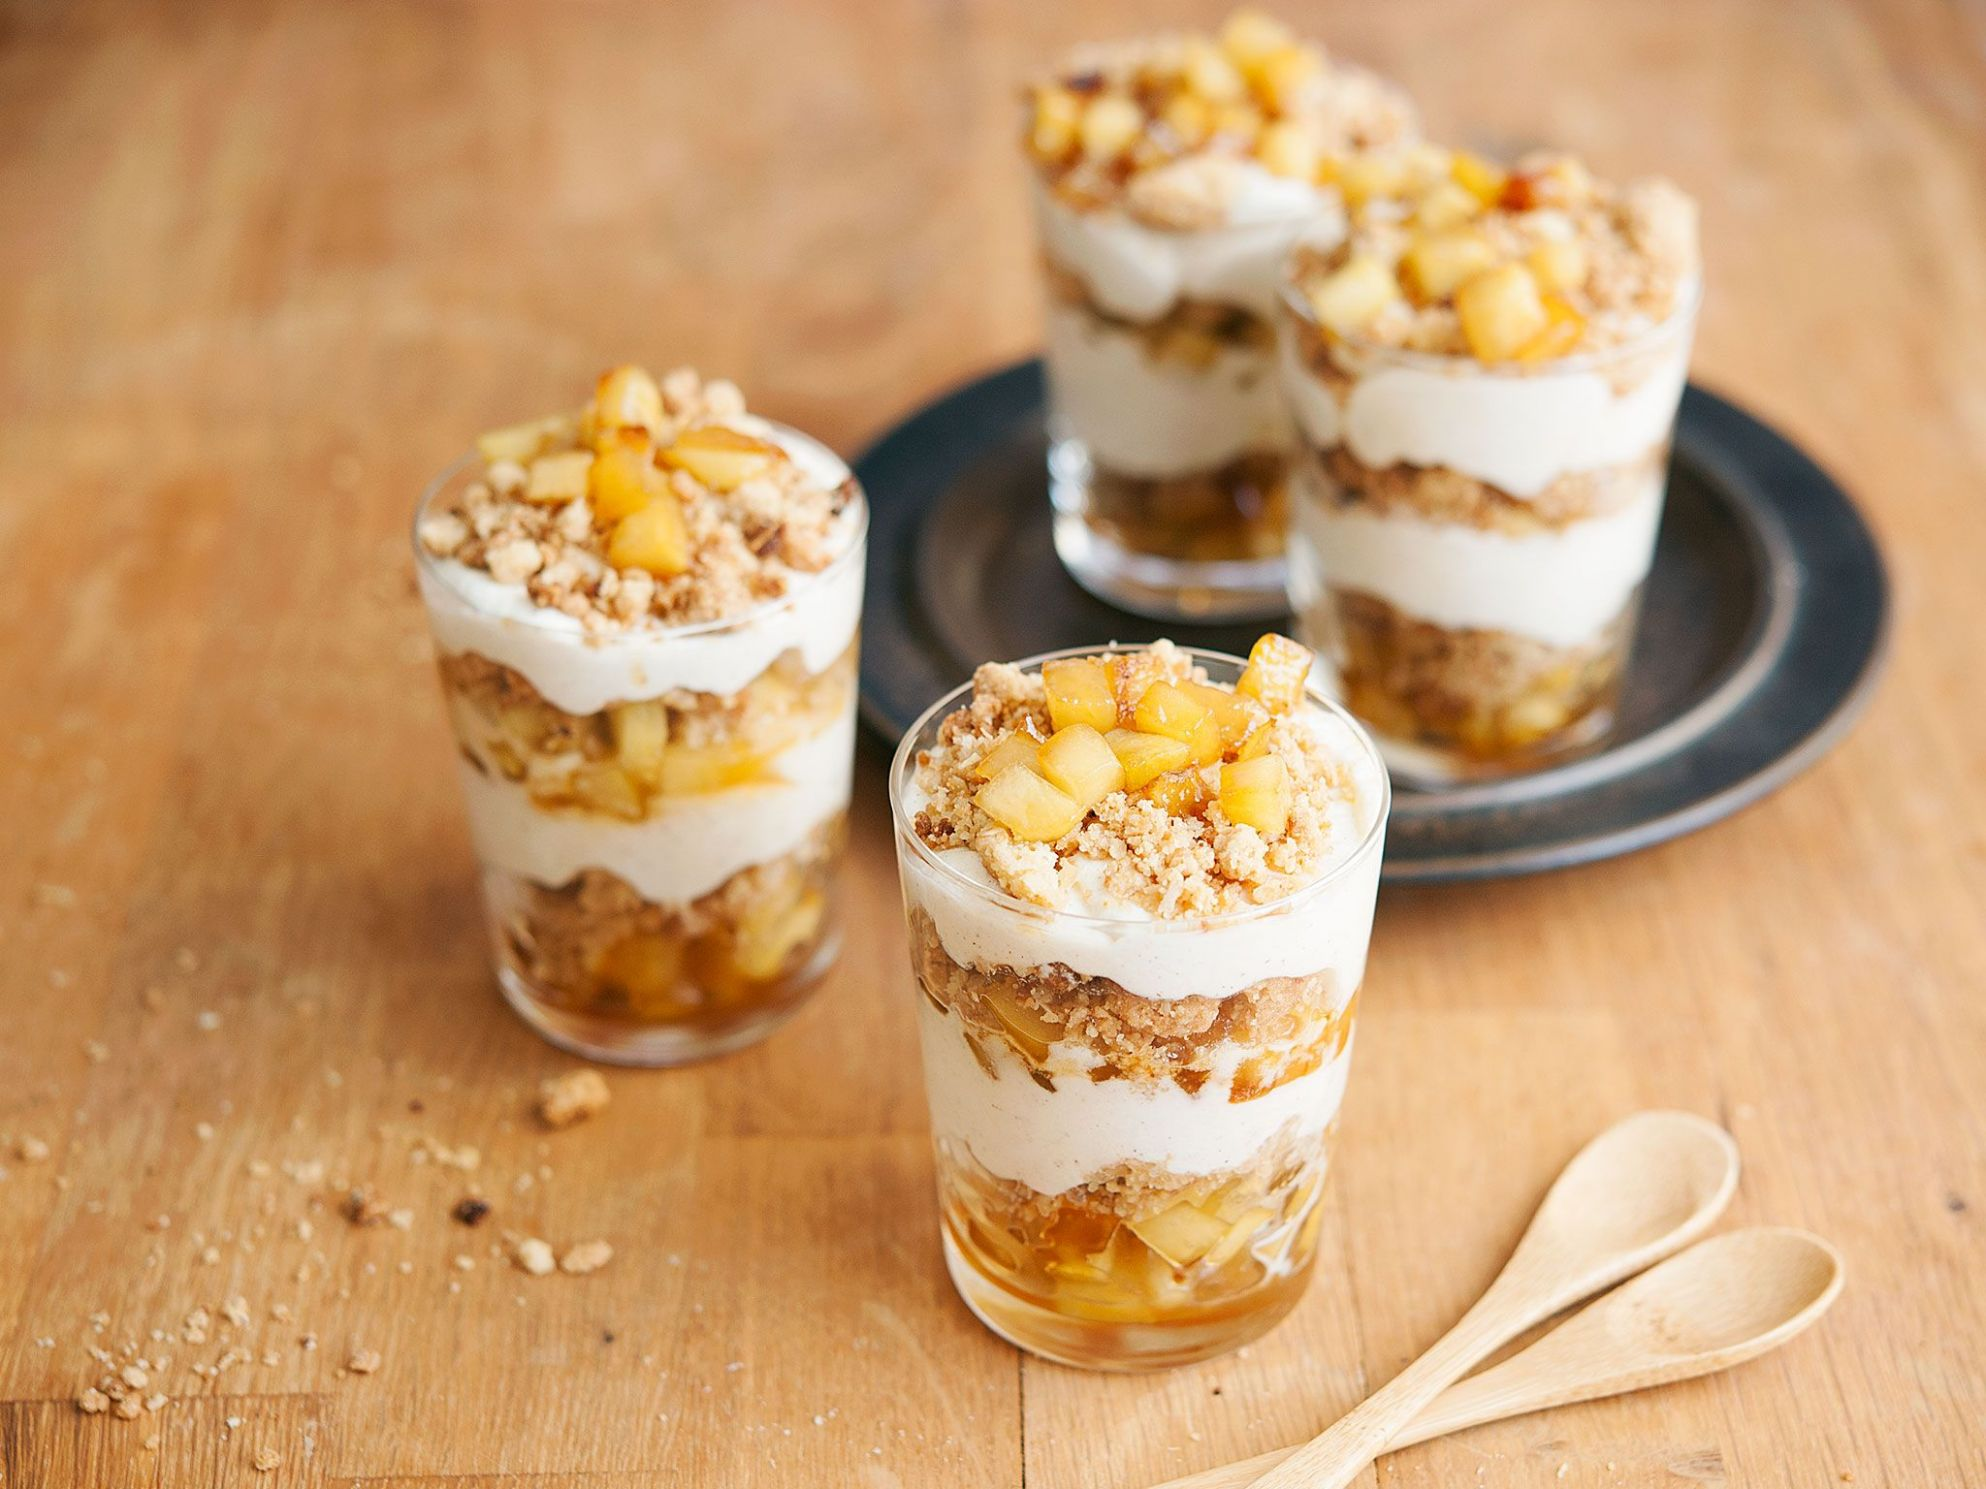 Apple crumble in a glass - Recipes Dessert Apples